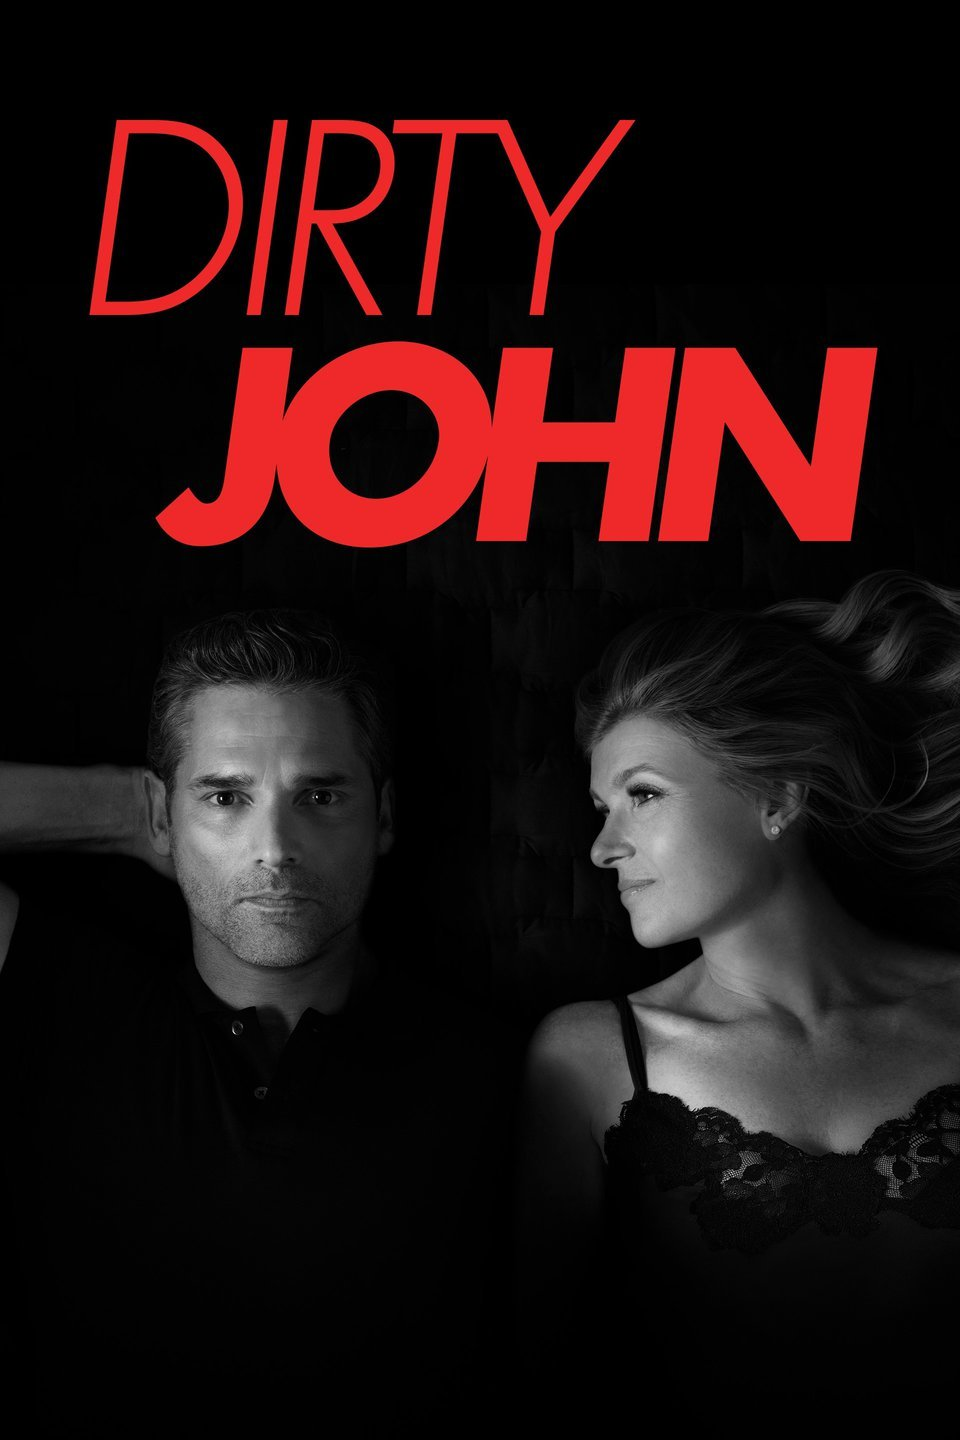 dirty john image.jpg